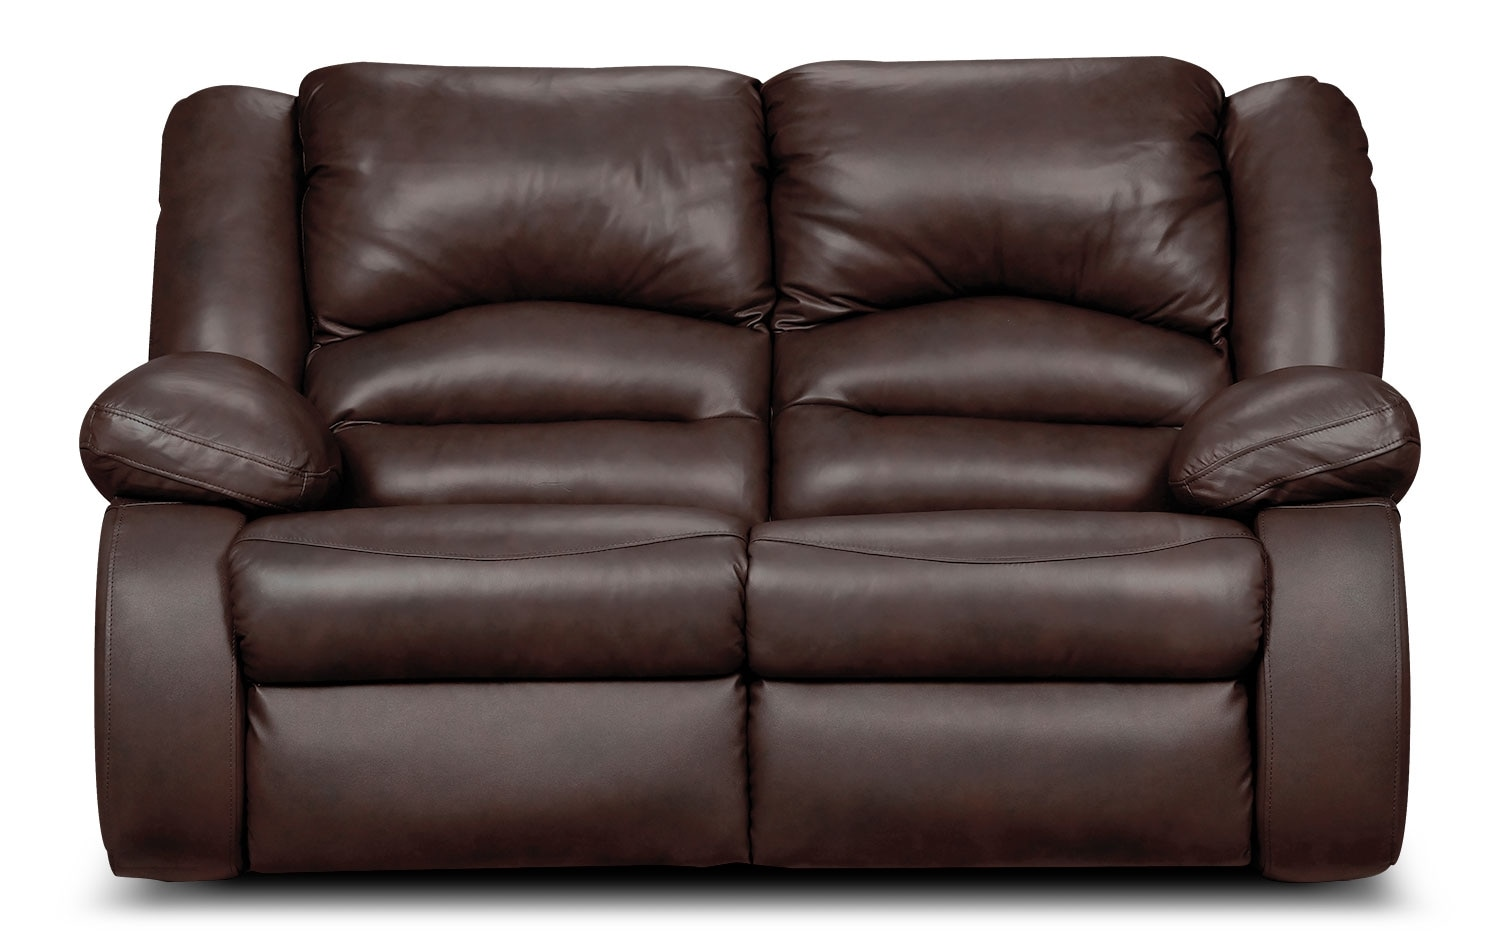 Real Leather Recliner Chairs Toreno Genuine Leather Power Reclining Chair Brown The